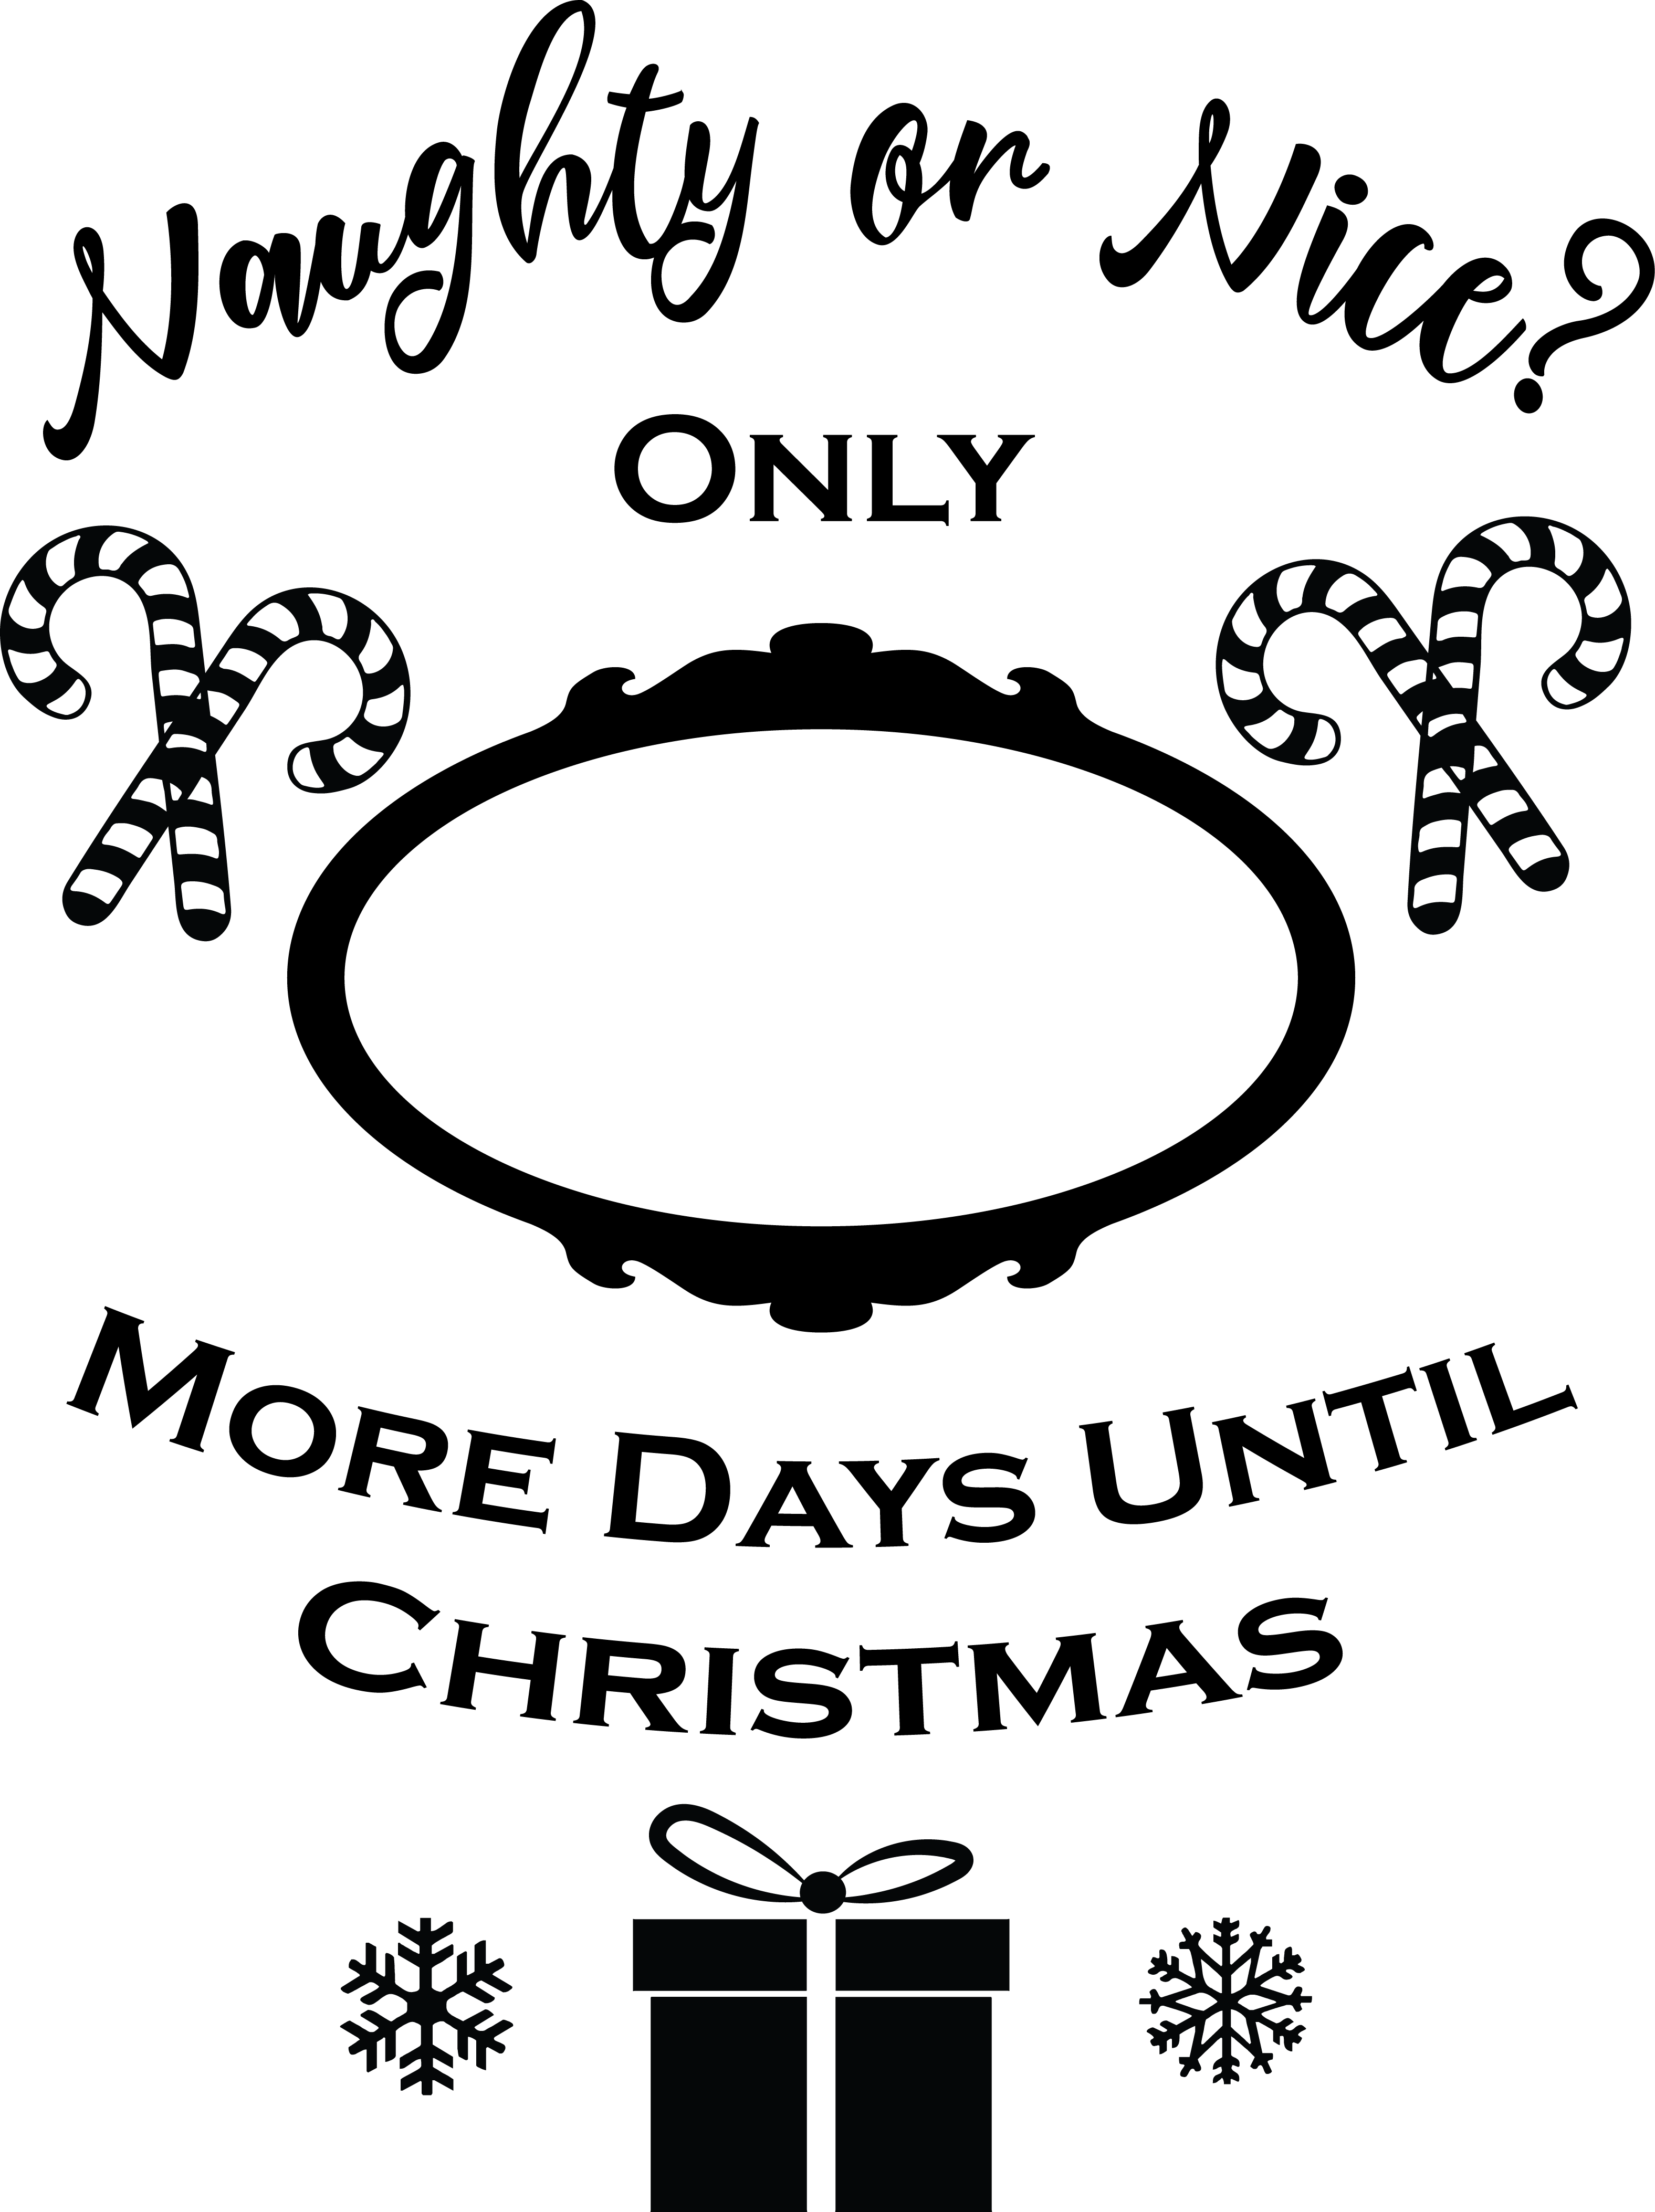 Days Until Christmas Free SVG File Navidad